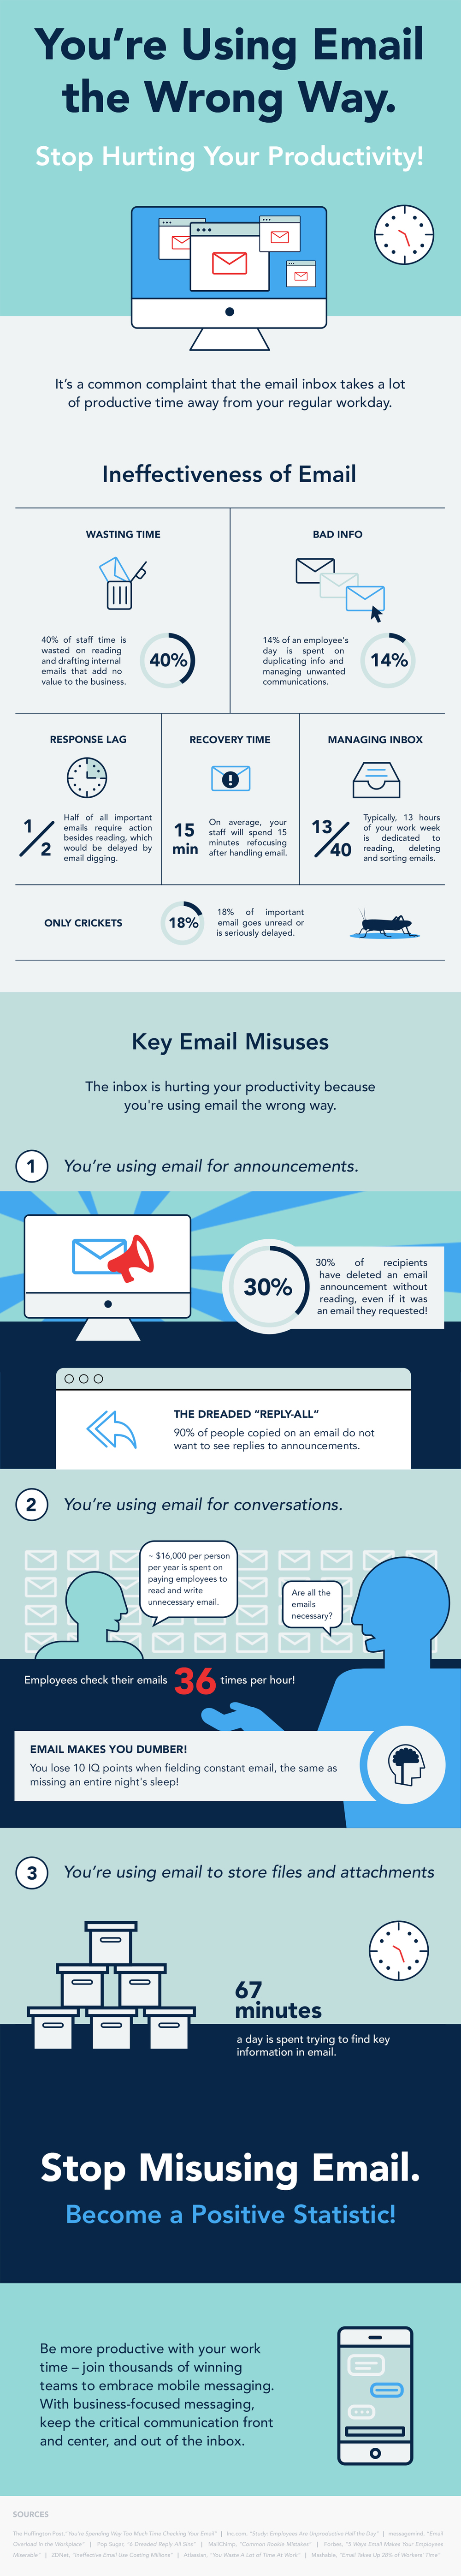 effective-email-business-infographic-huff